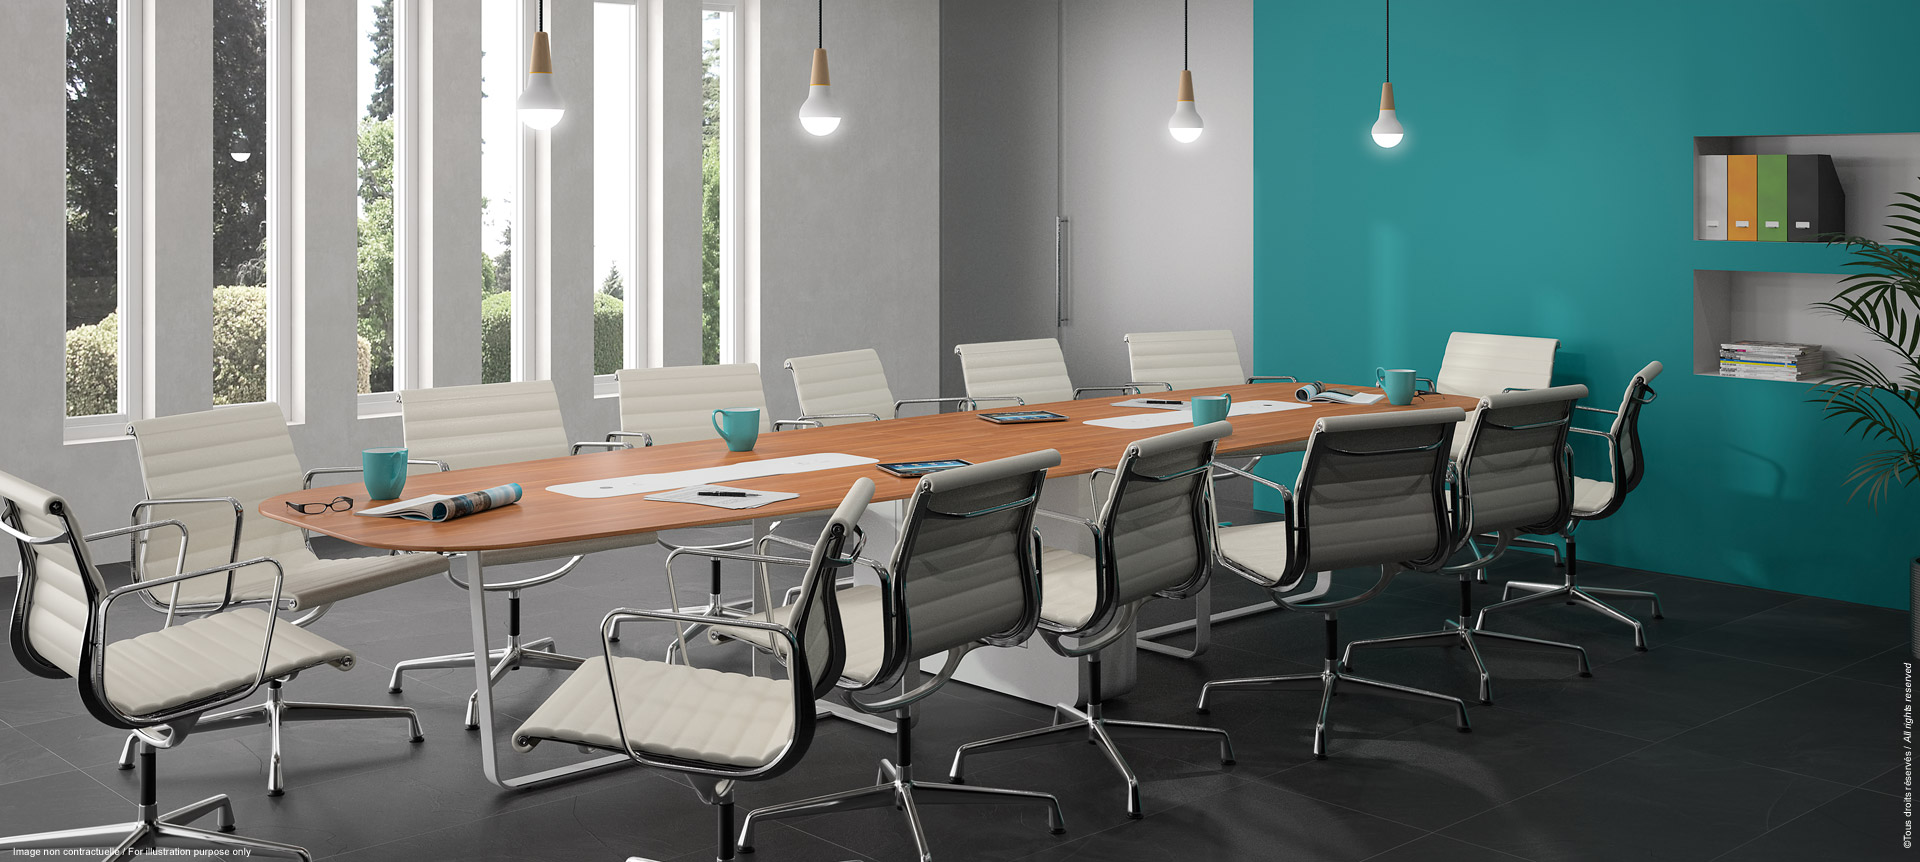 WEMEET MIXED - Meeting table coworking or training room